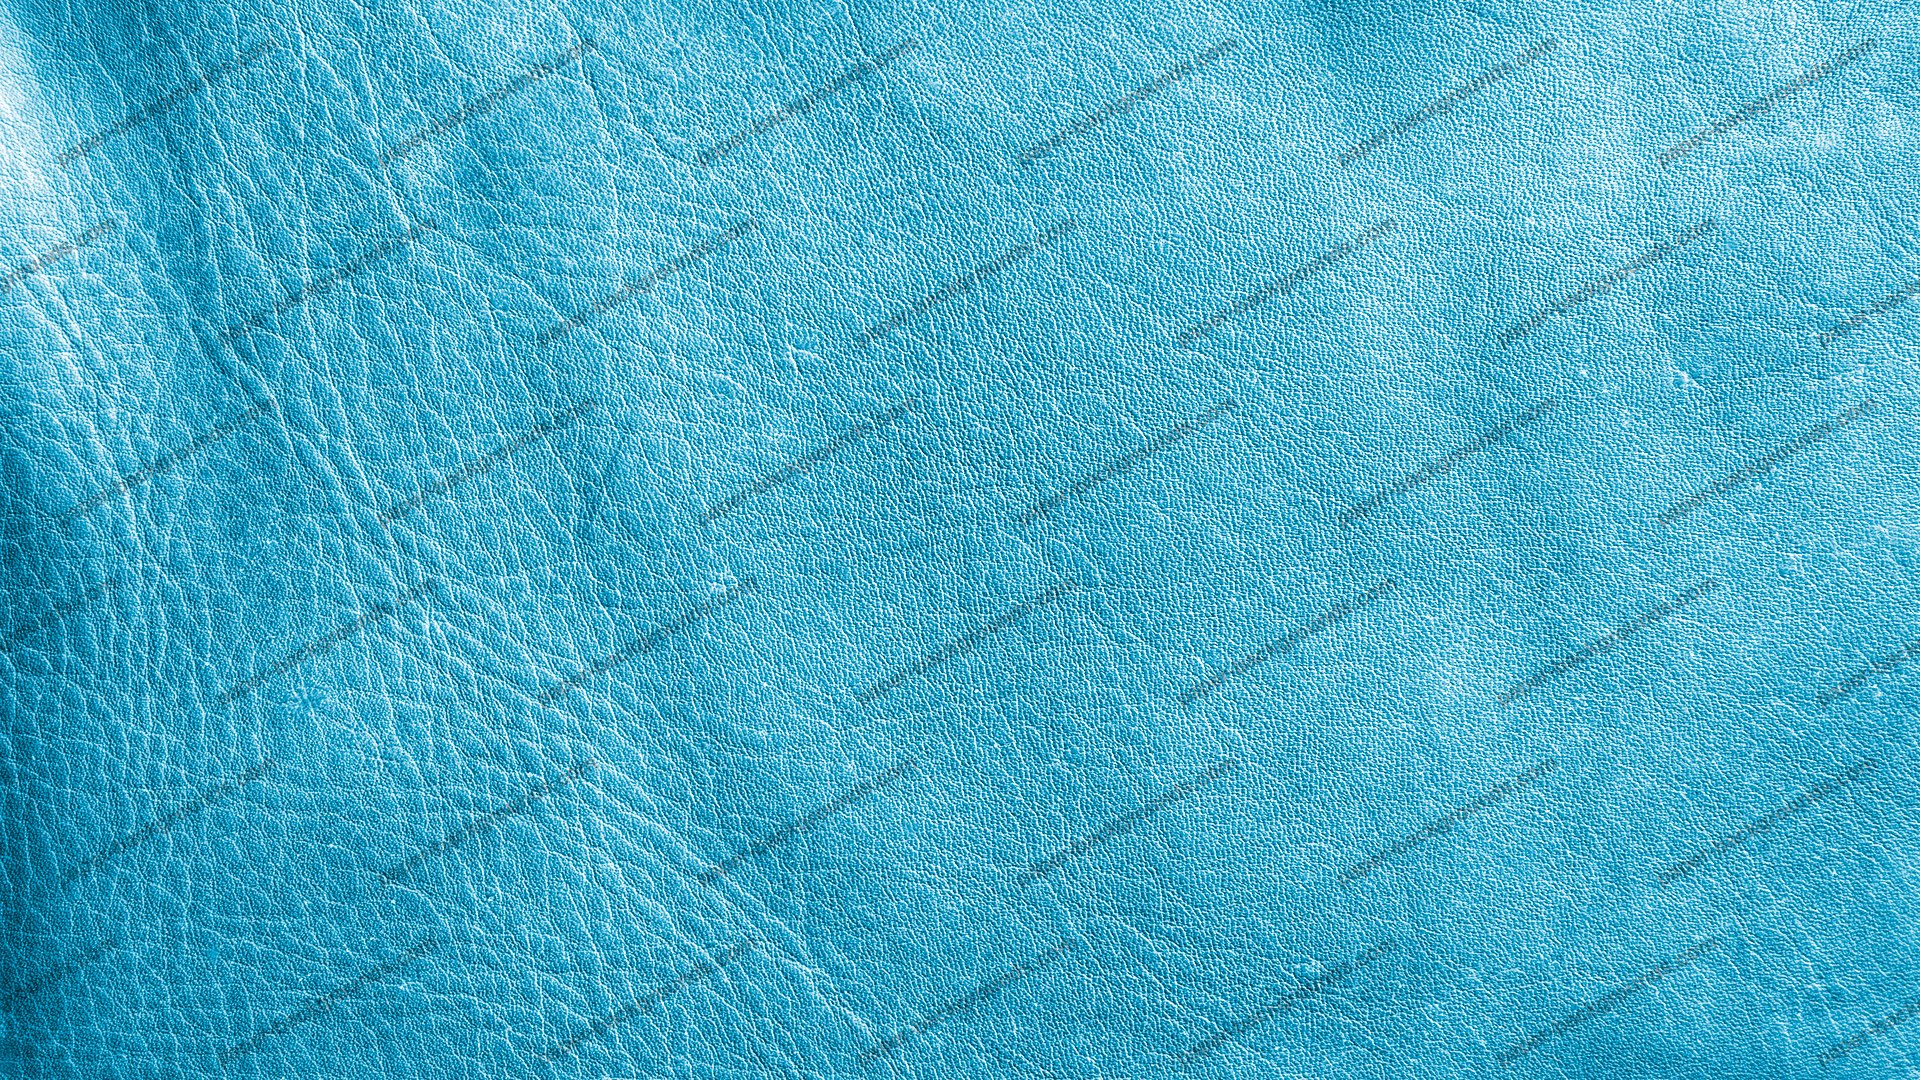 Marine Blue Leather Texture HD 1920 x 1080p